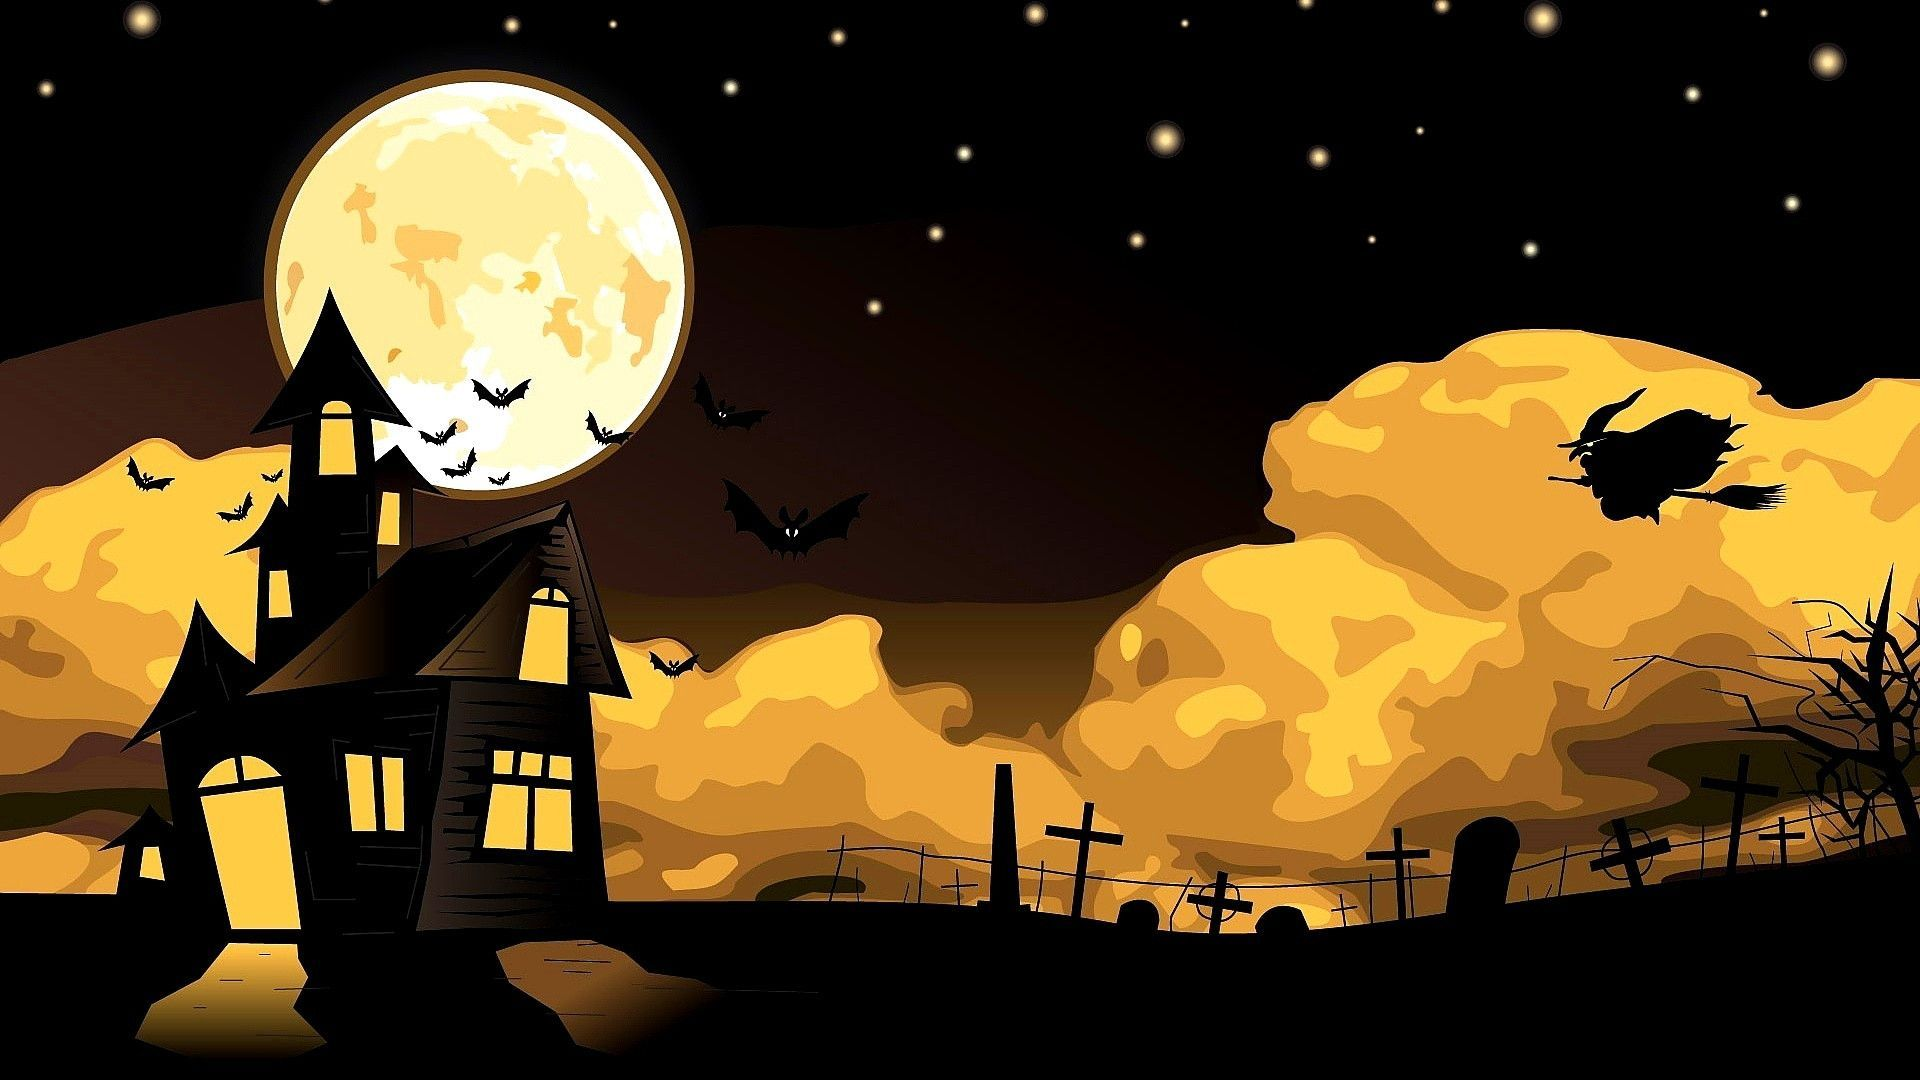 Halloween-1920x1080-HD-Desktop-wallpaper-wp3806152